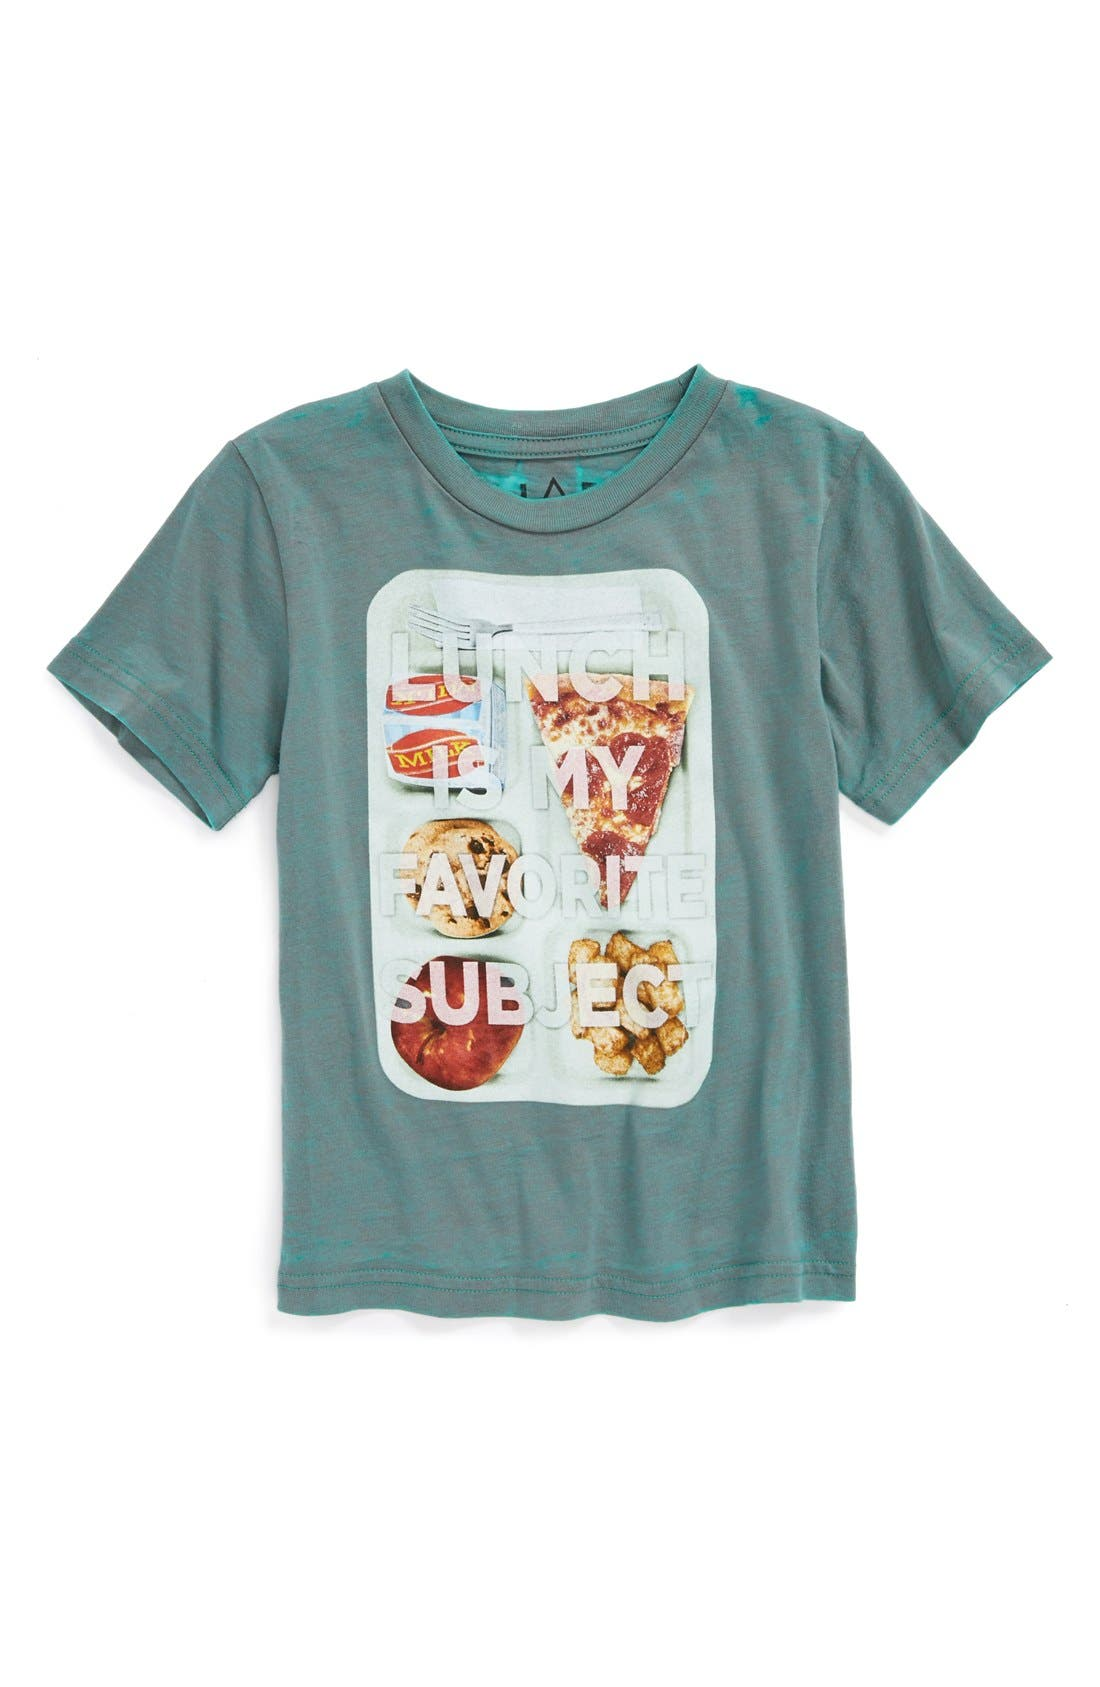 Alternate Image 1 Selected - Jem 'Lunch Is My Favorite Subject' Graphic T-Shirt (Little Boys)